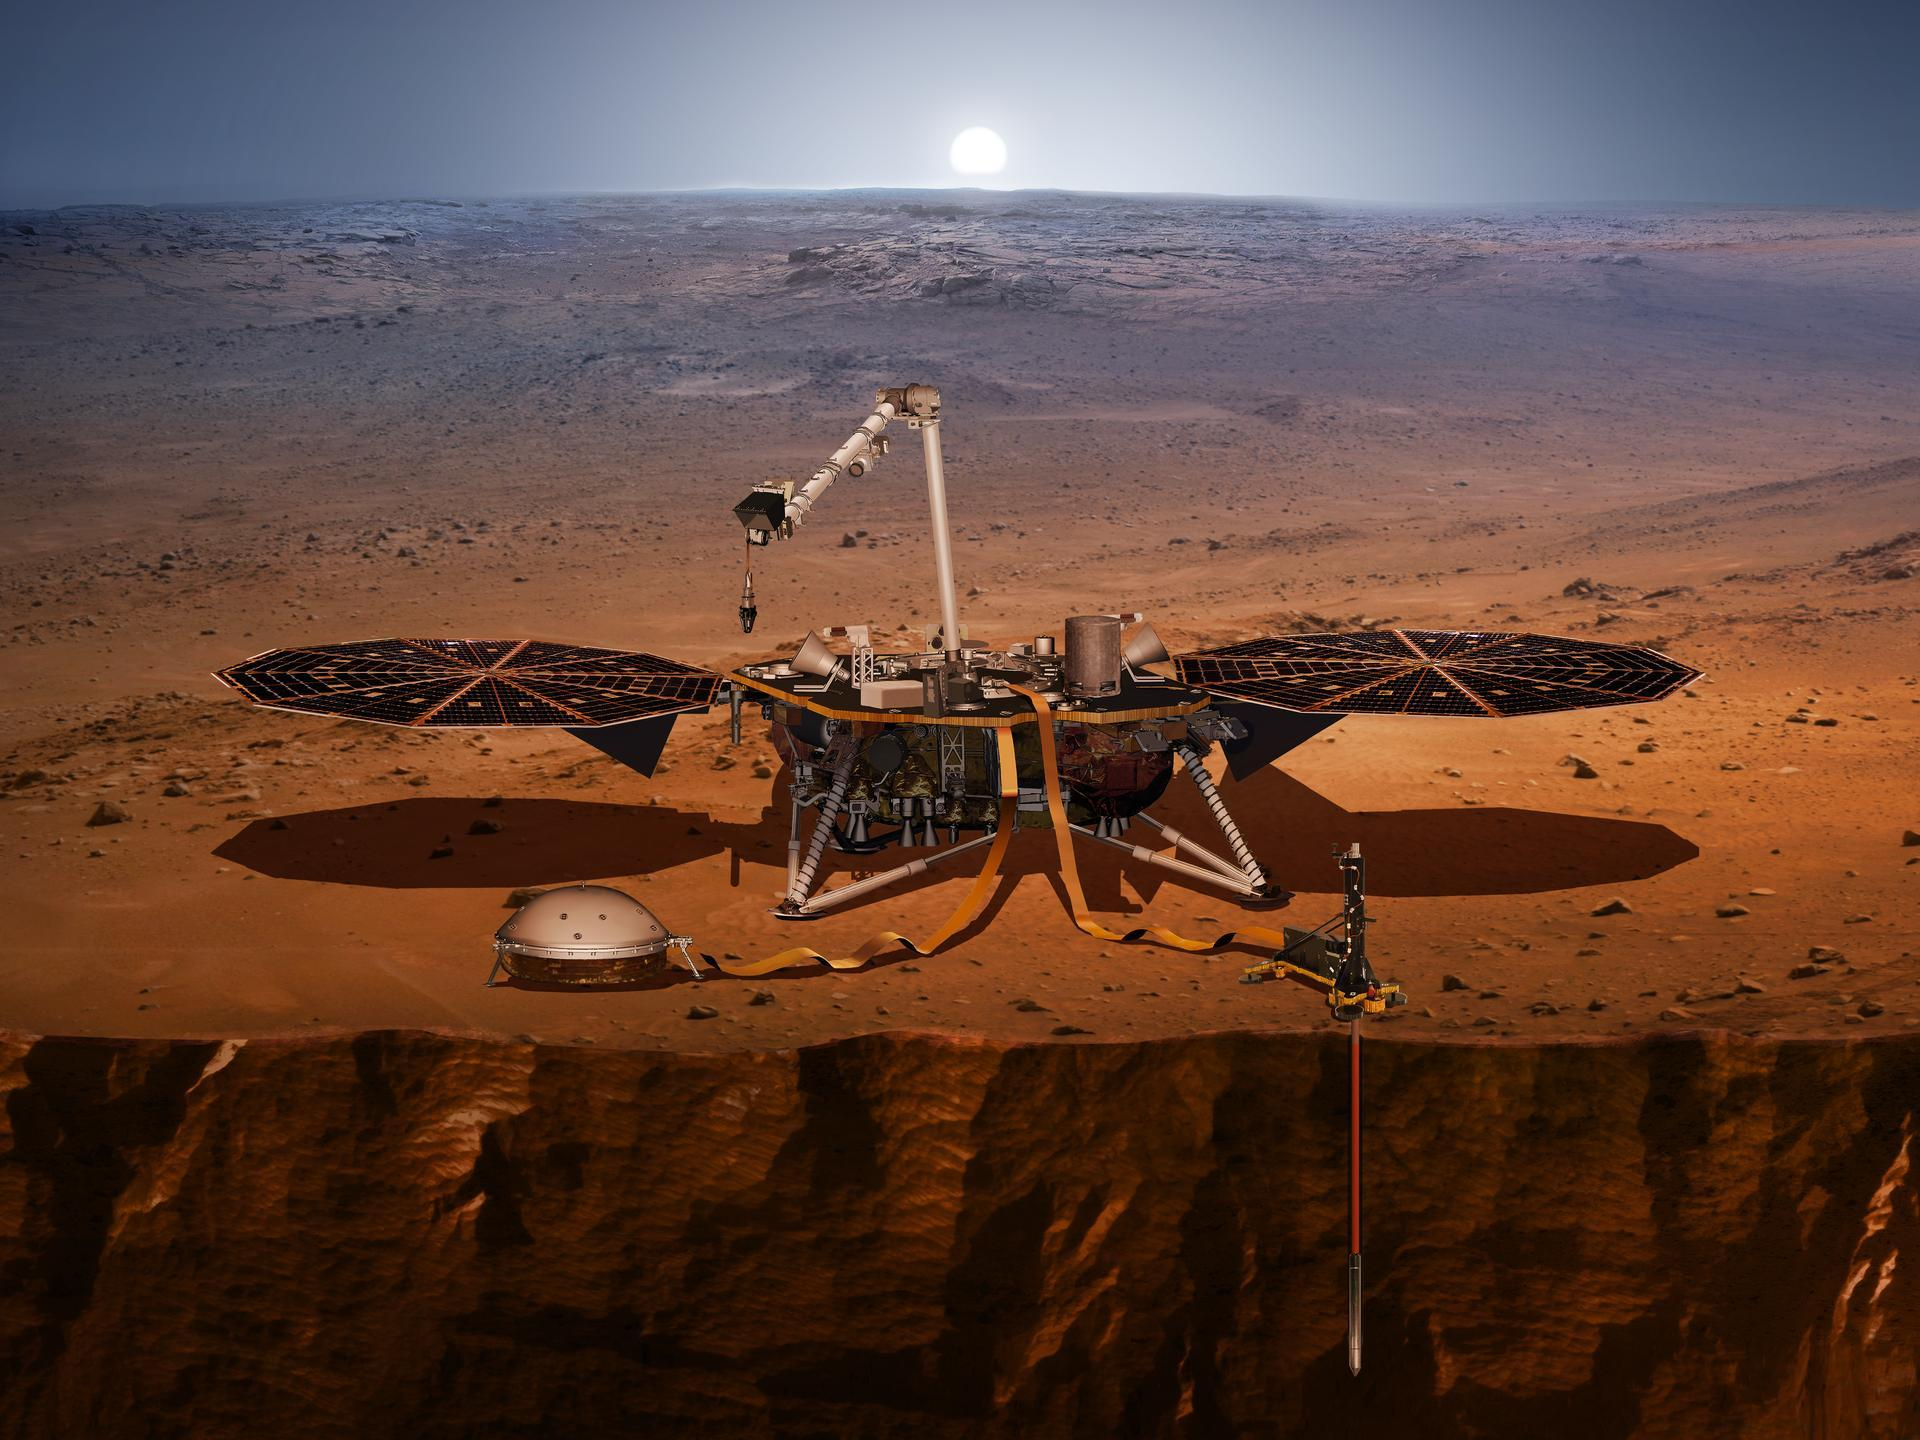 NASA unveiled the recording of wind noise on Mars